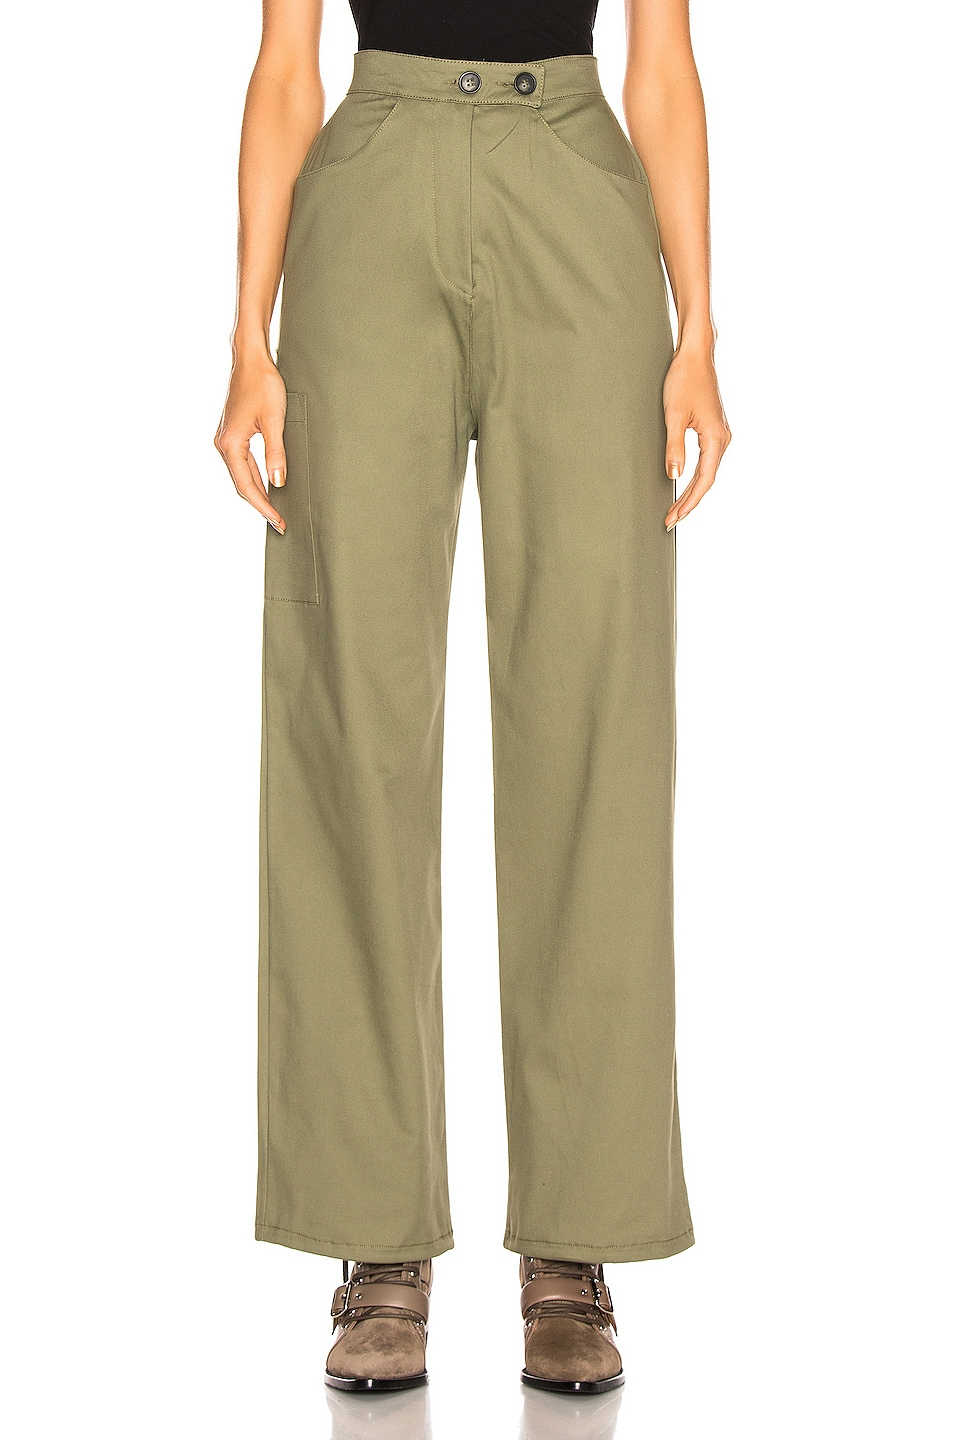 Image 2 of The Range Structured Cargo Pant in Fatigue